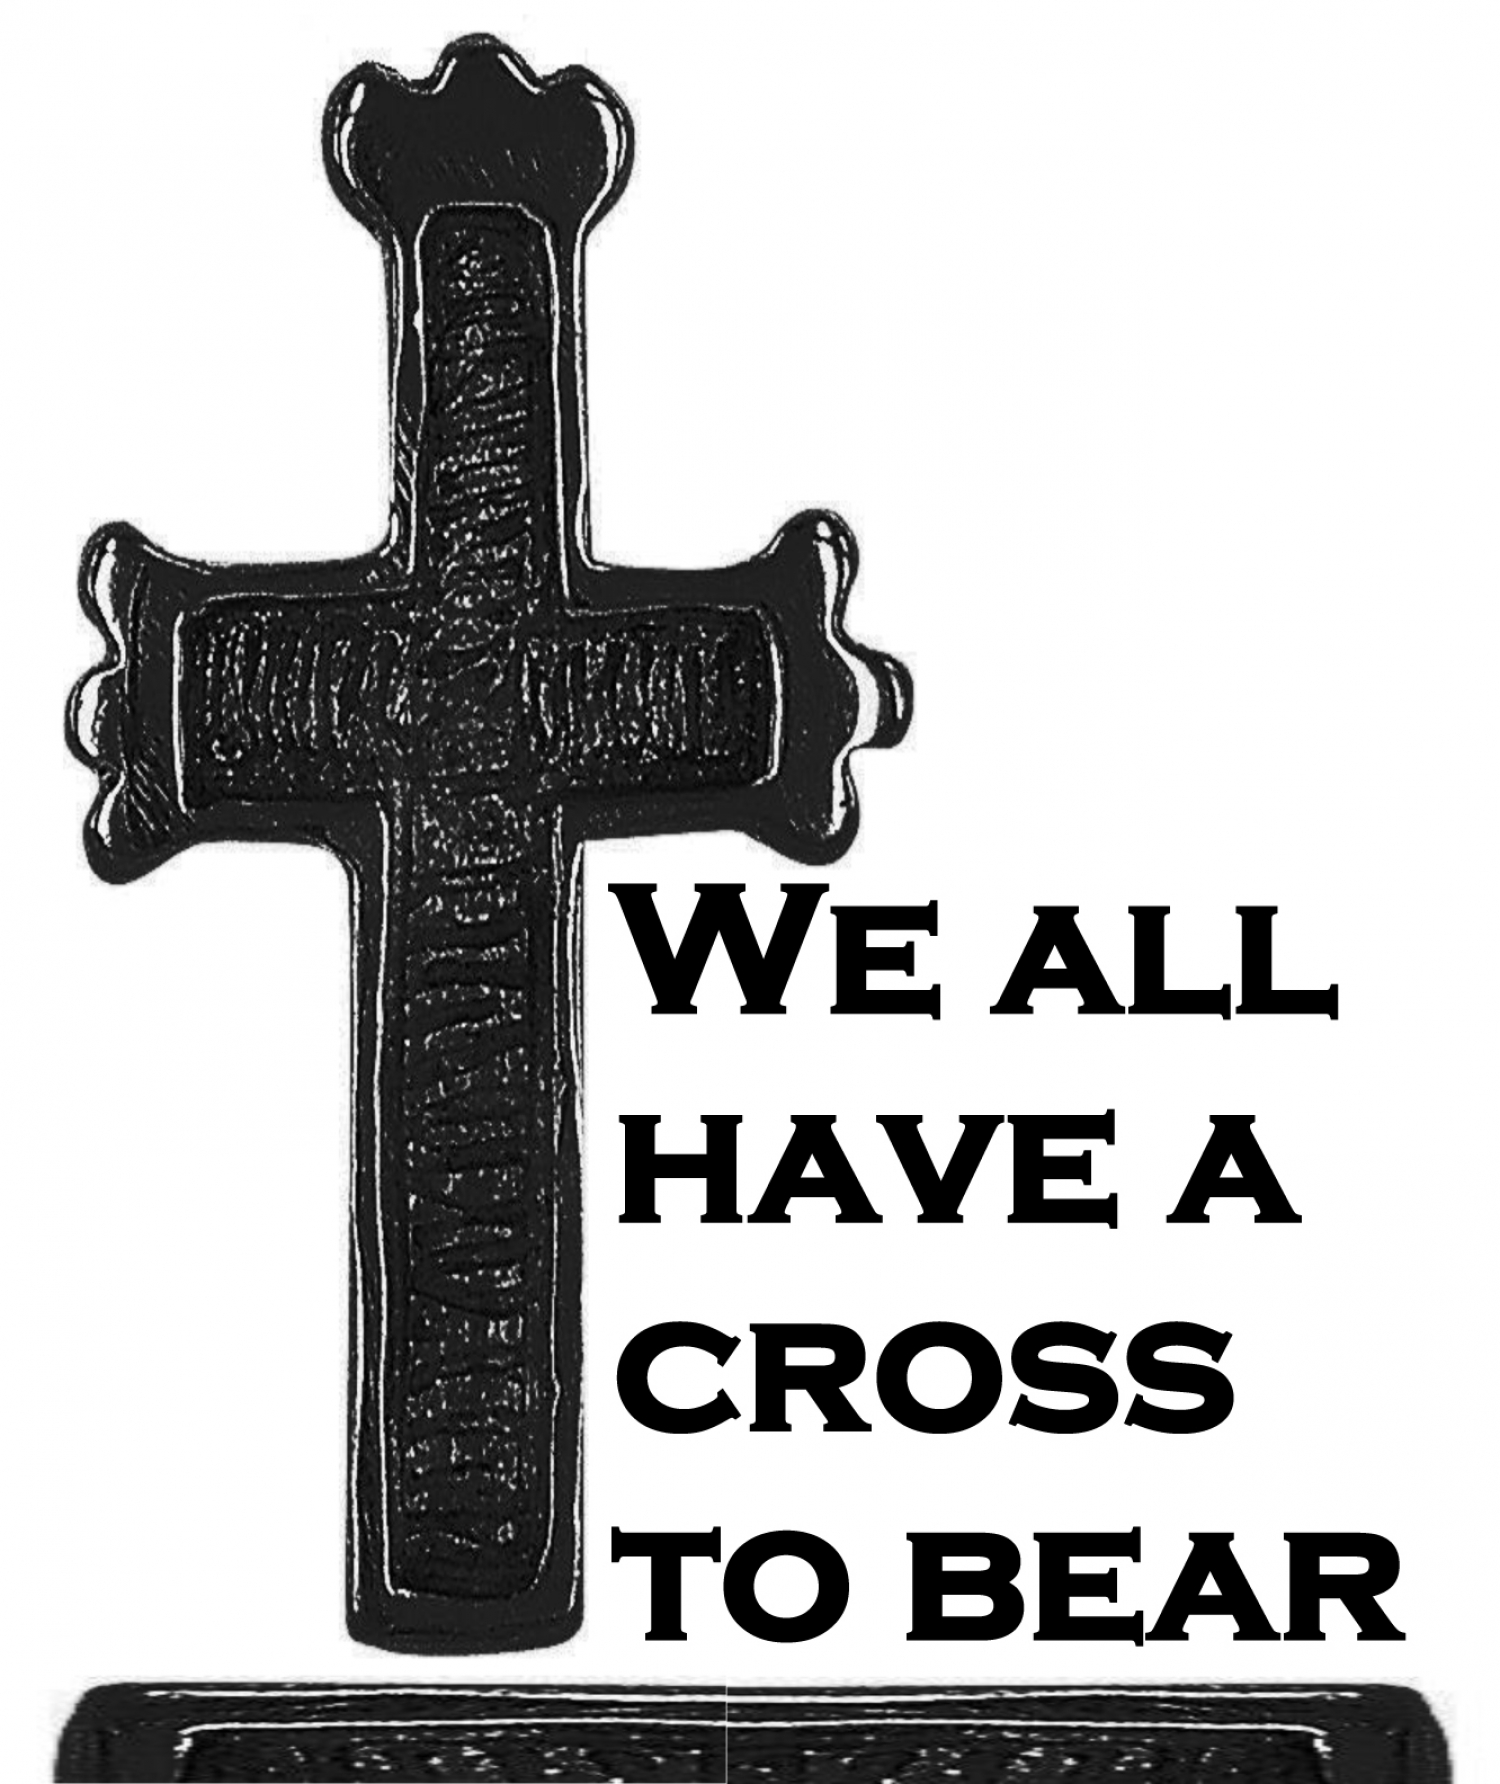 We all have a cross to bear